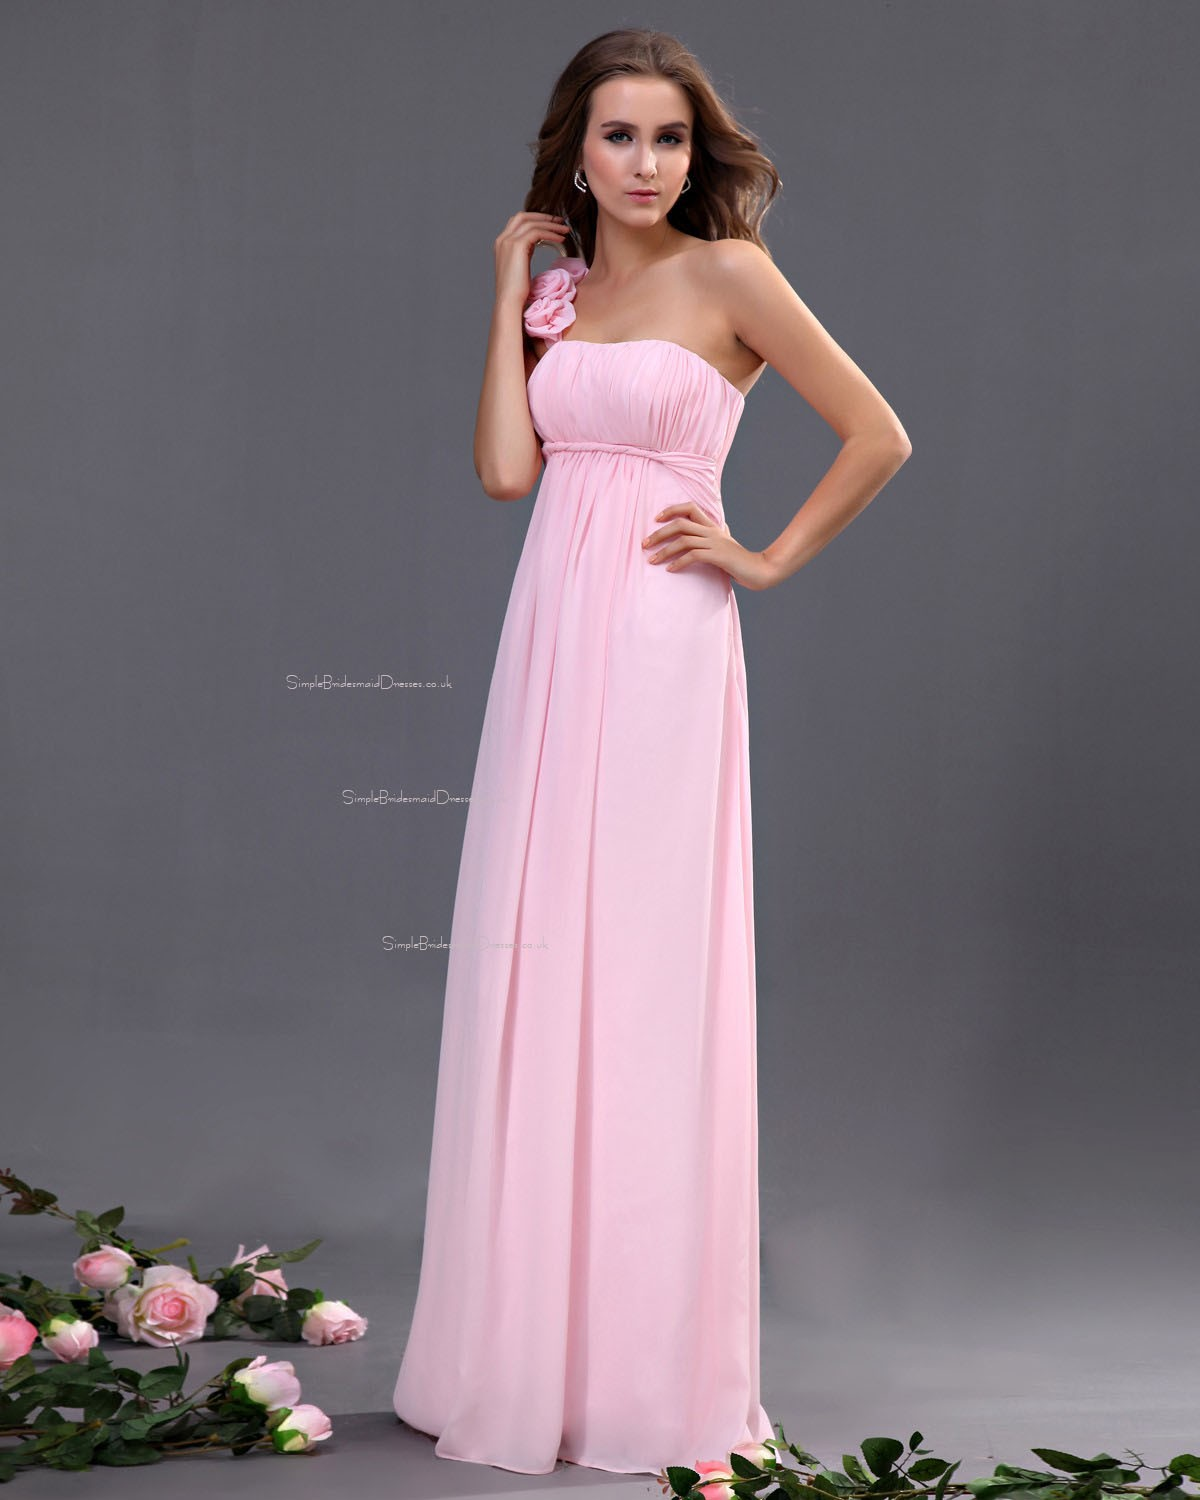 Pink Chiffon Ruffles/Flowers/Draped Sleeveless Floor-length ...